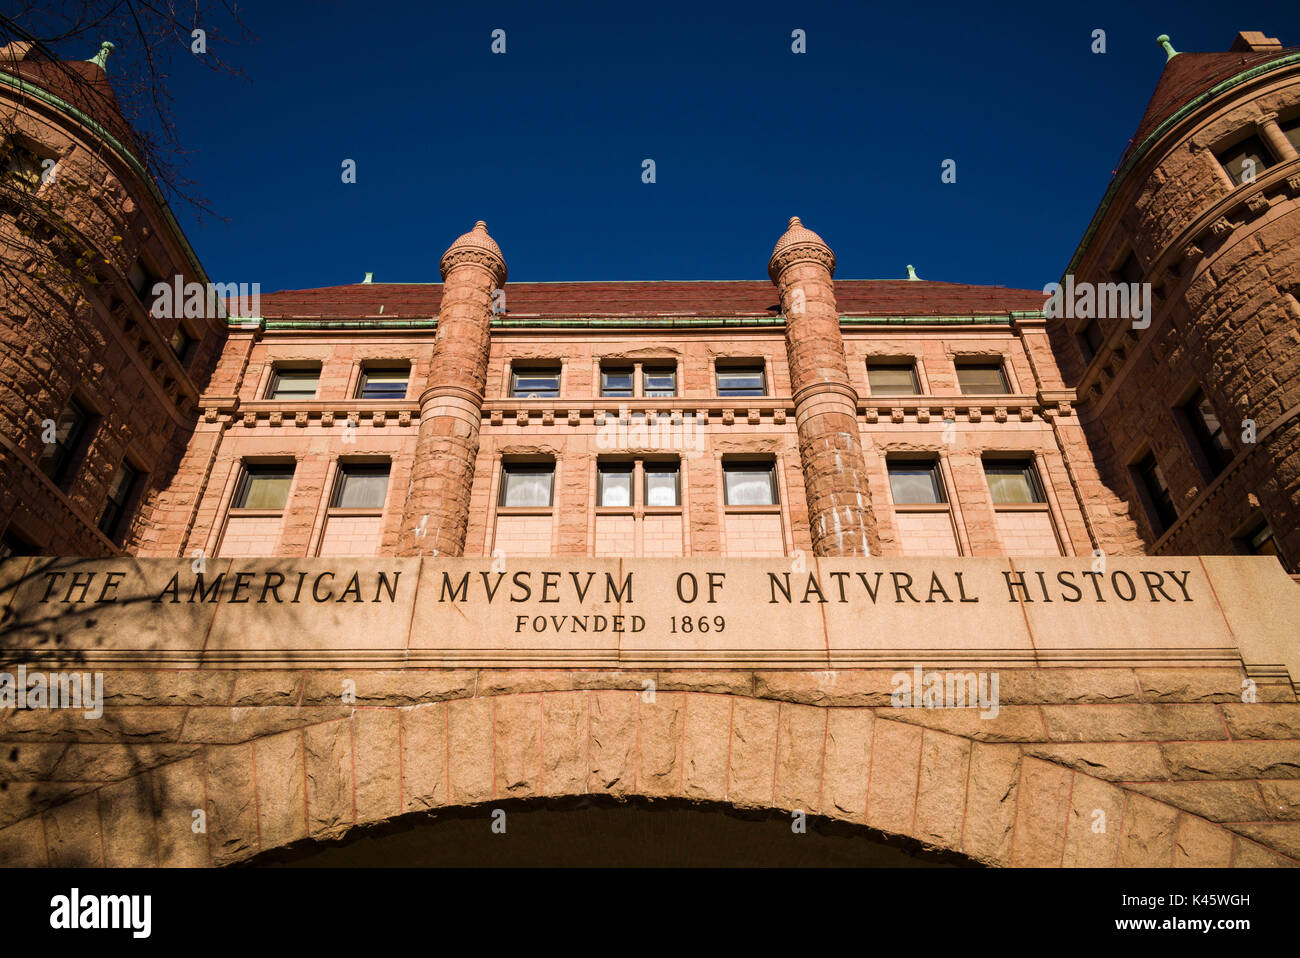 USA, New York, New York City, Upper West Side, Museum of Natural History, exterior - Stock Image